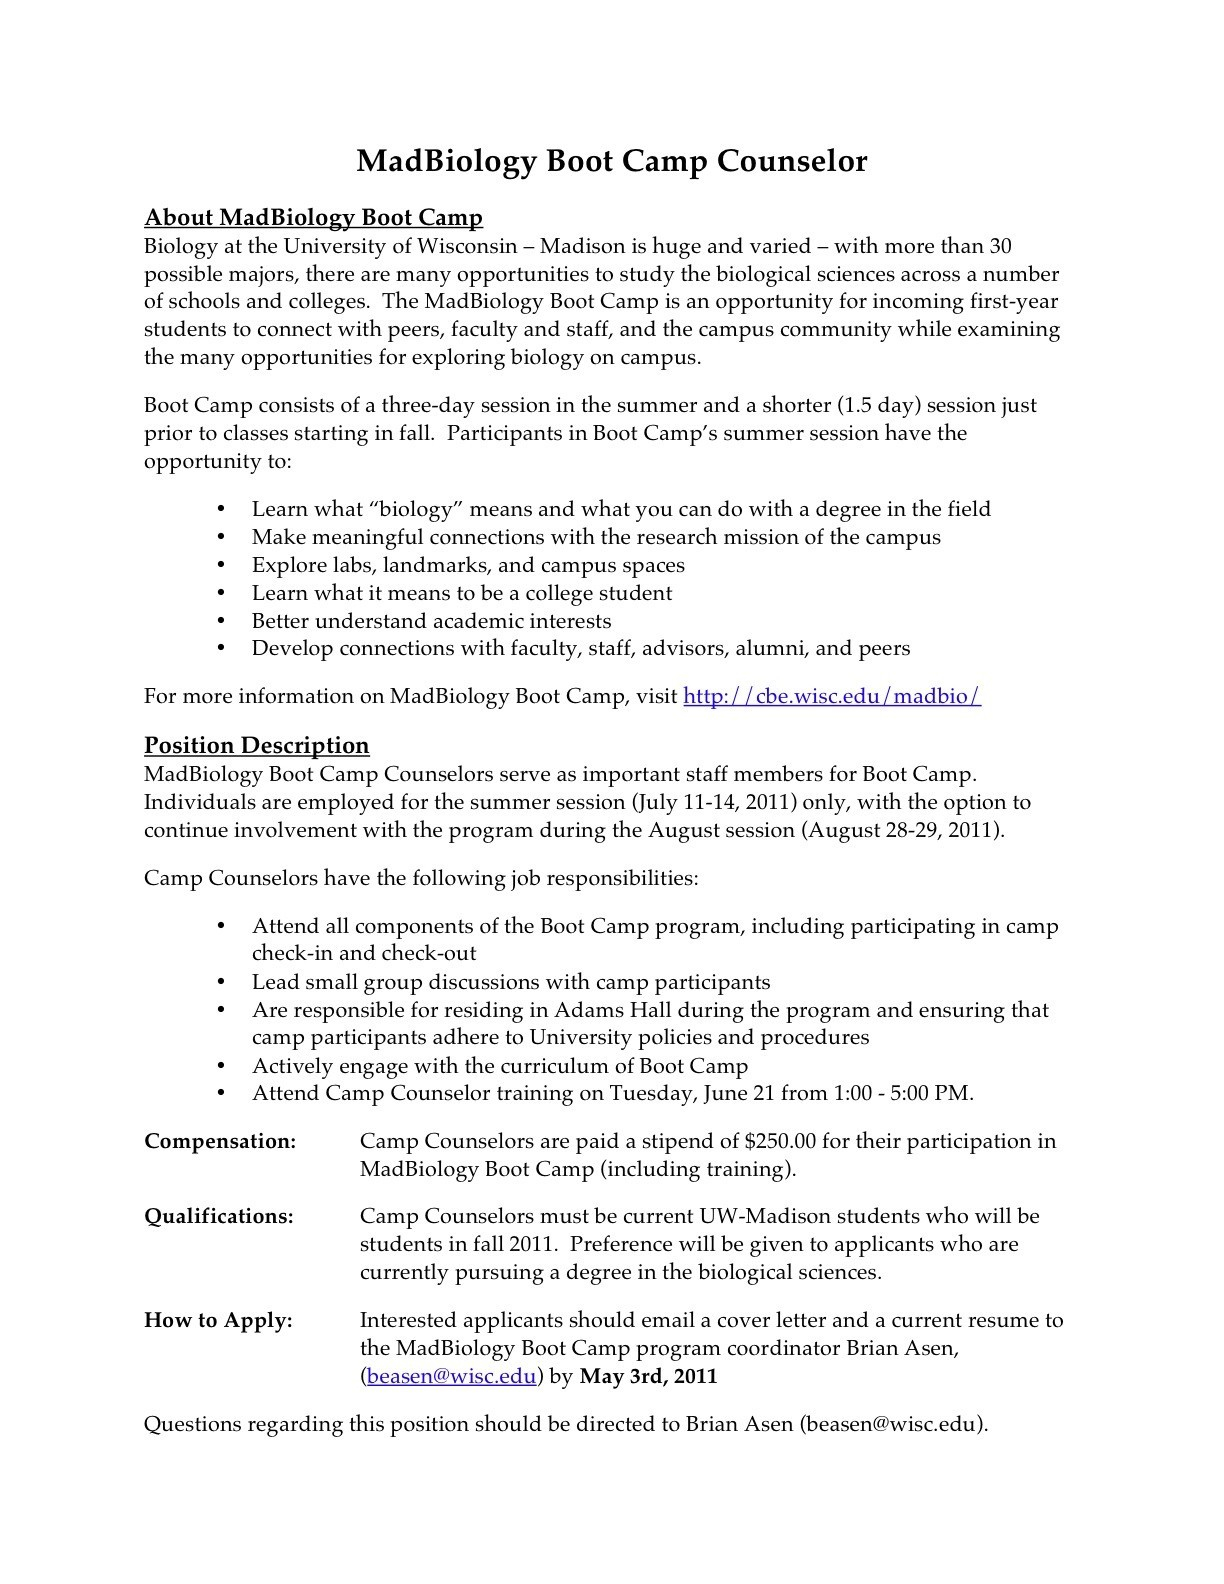 Camp Counselor Job Description for Resume - Camp Counselor Resume Inspirational Resume Examples for Youth